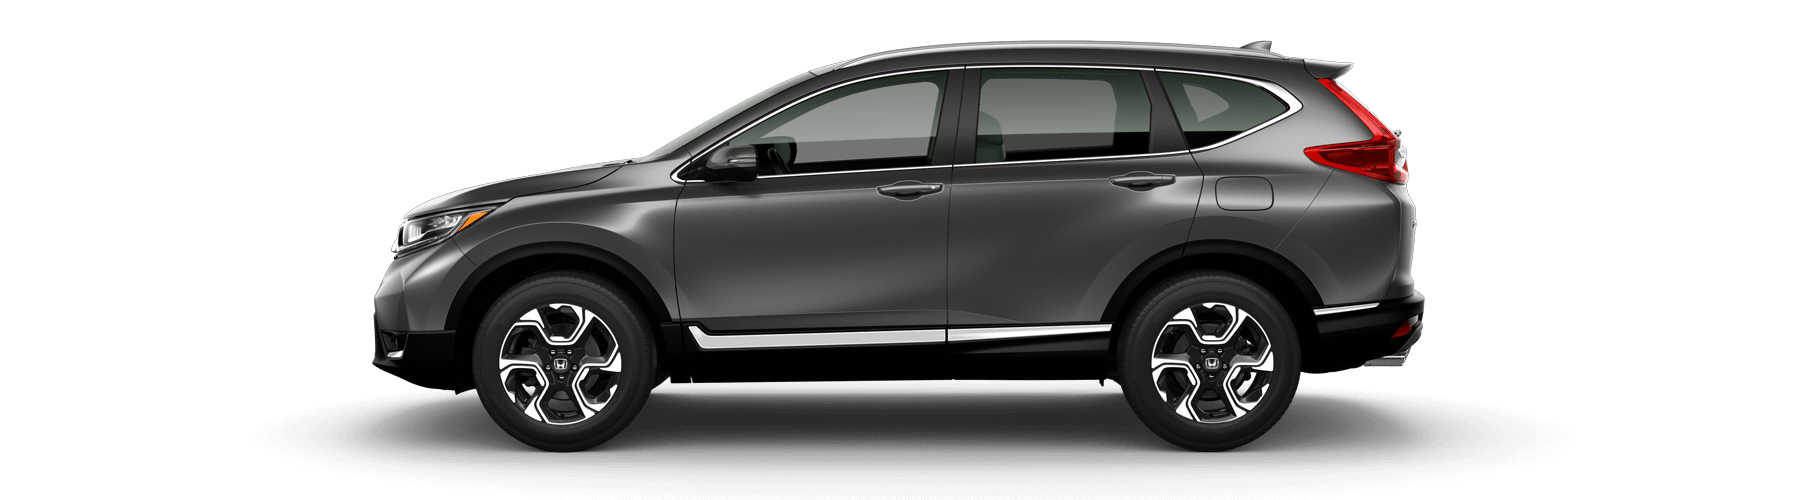 2018 Honda CR-V Side Profile